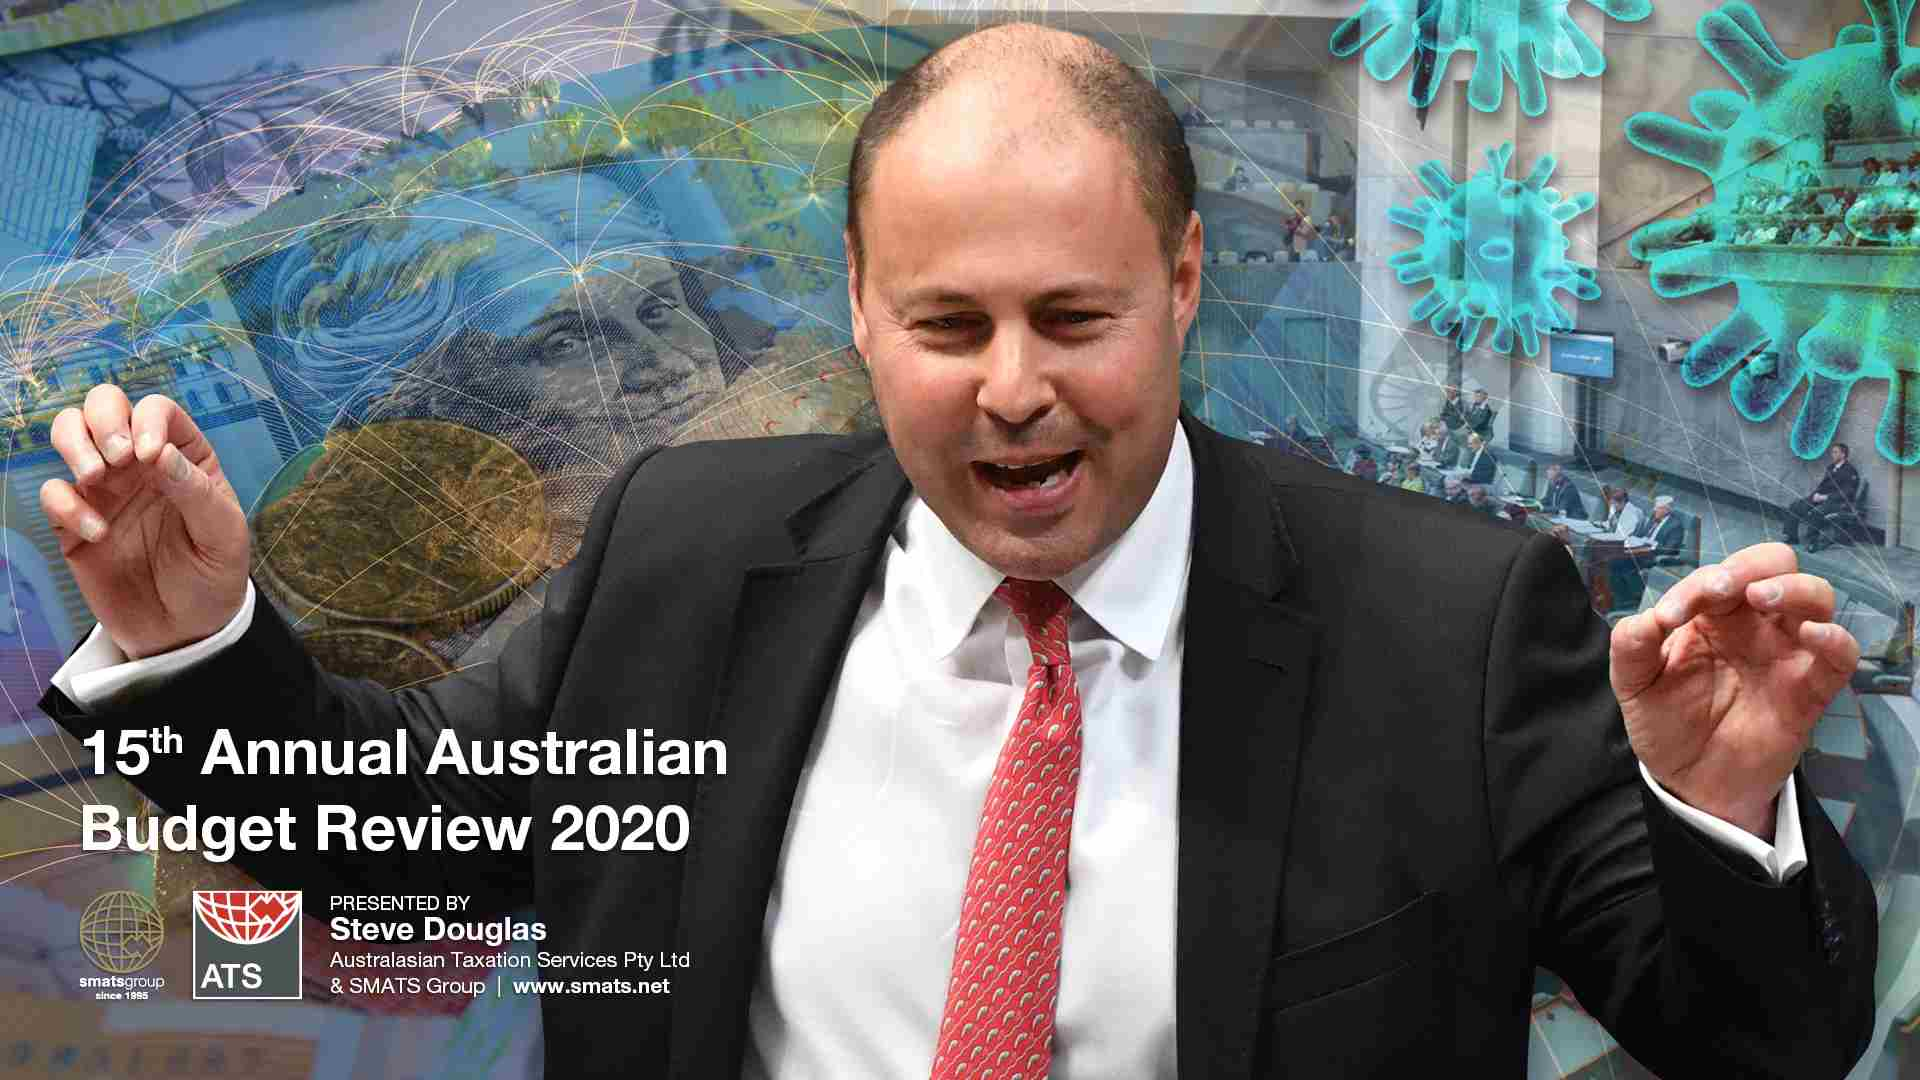 2020 Australian Federal Budget Review with Steve Douglas